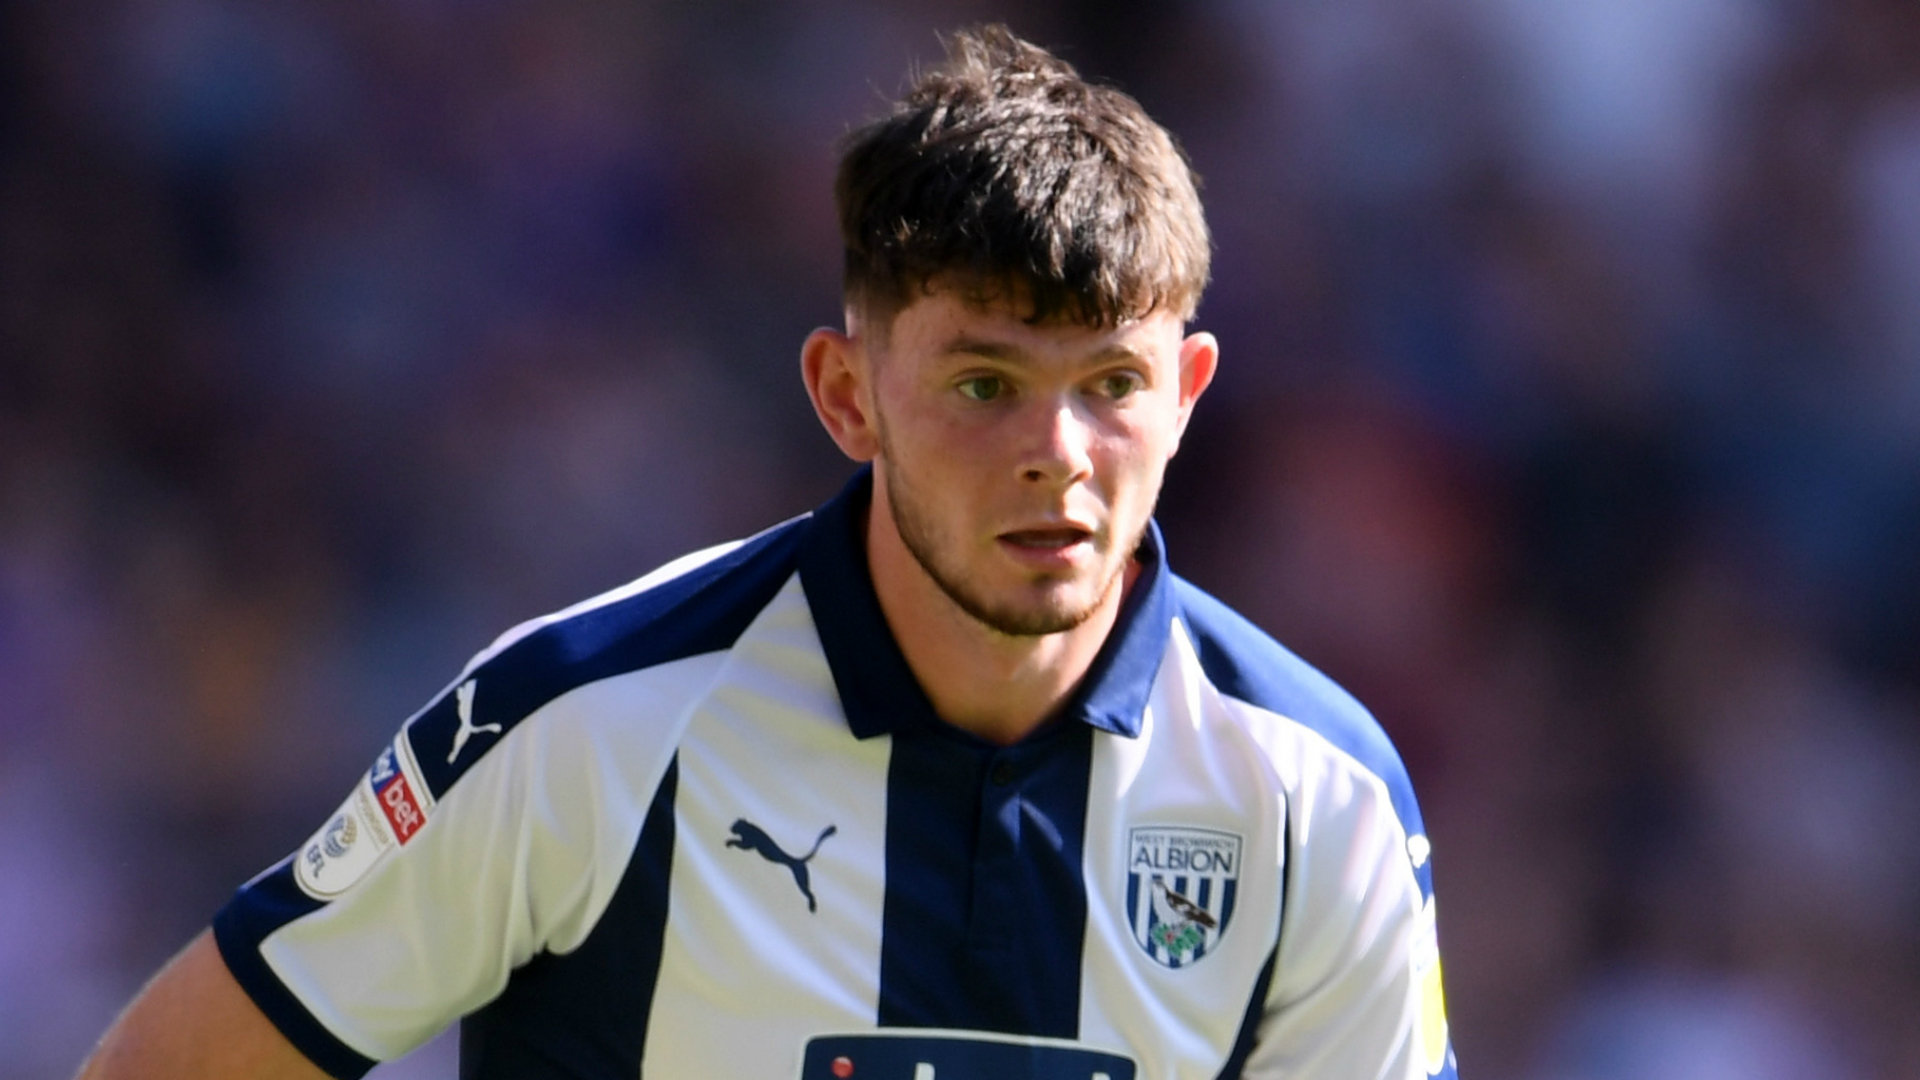 Celtic sign winger Oliver Burke on loan from West Brom